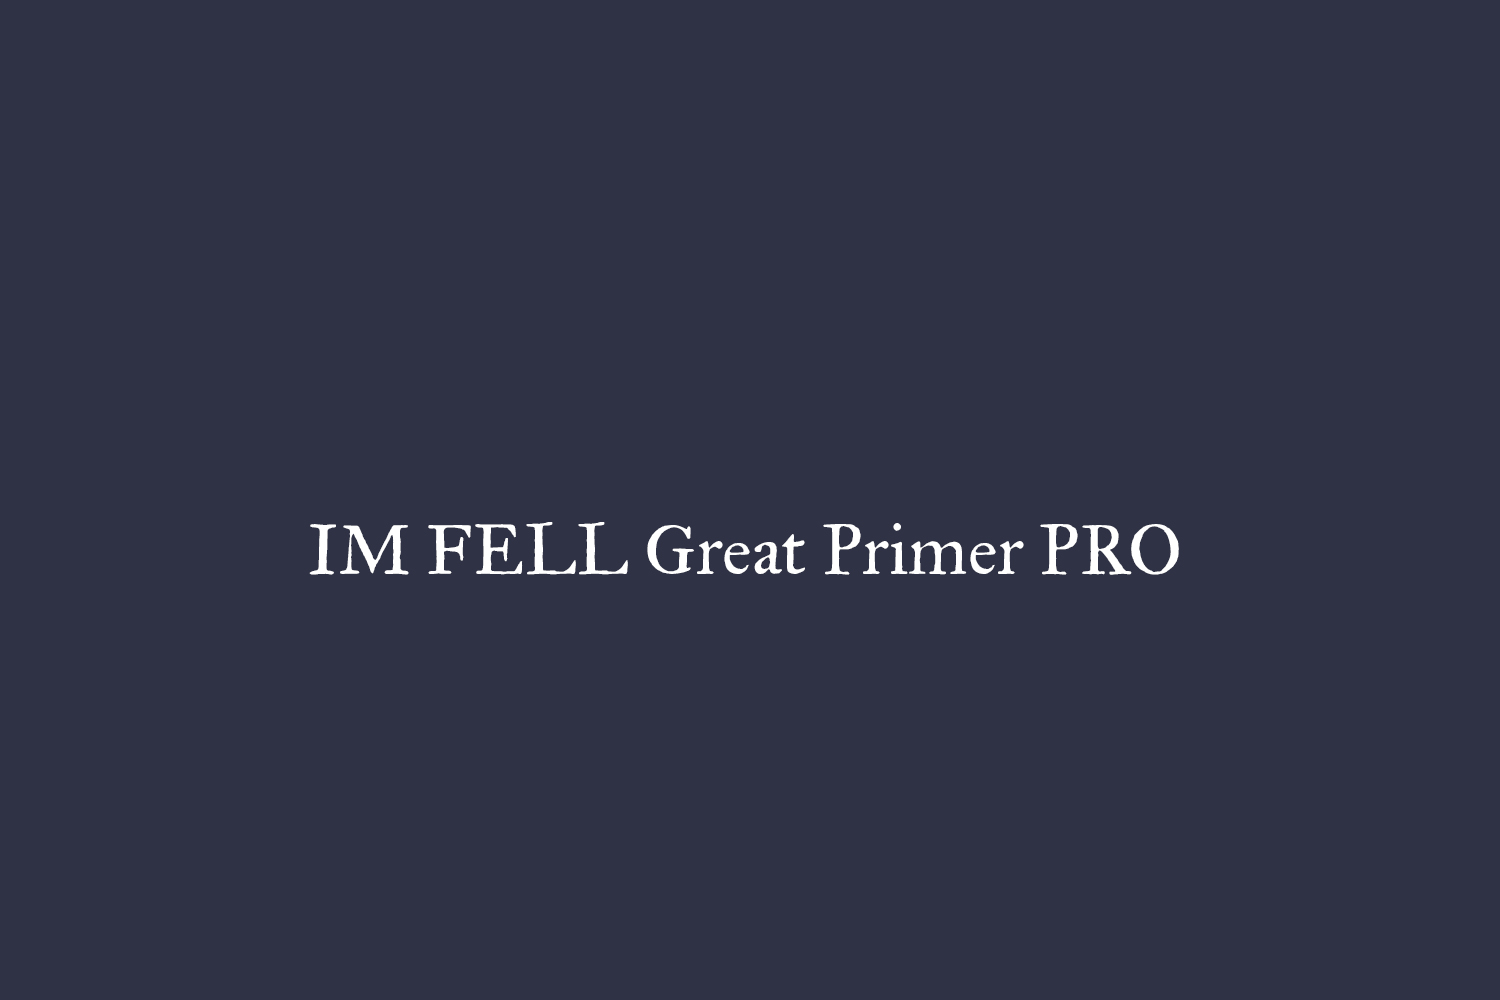 IM FELL Great Primer PRO